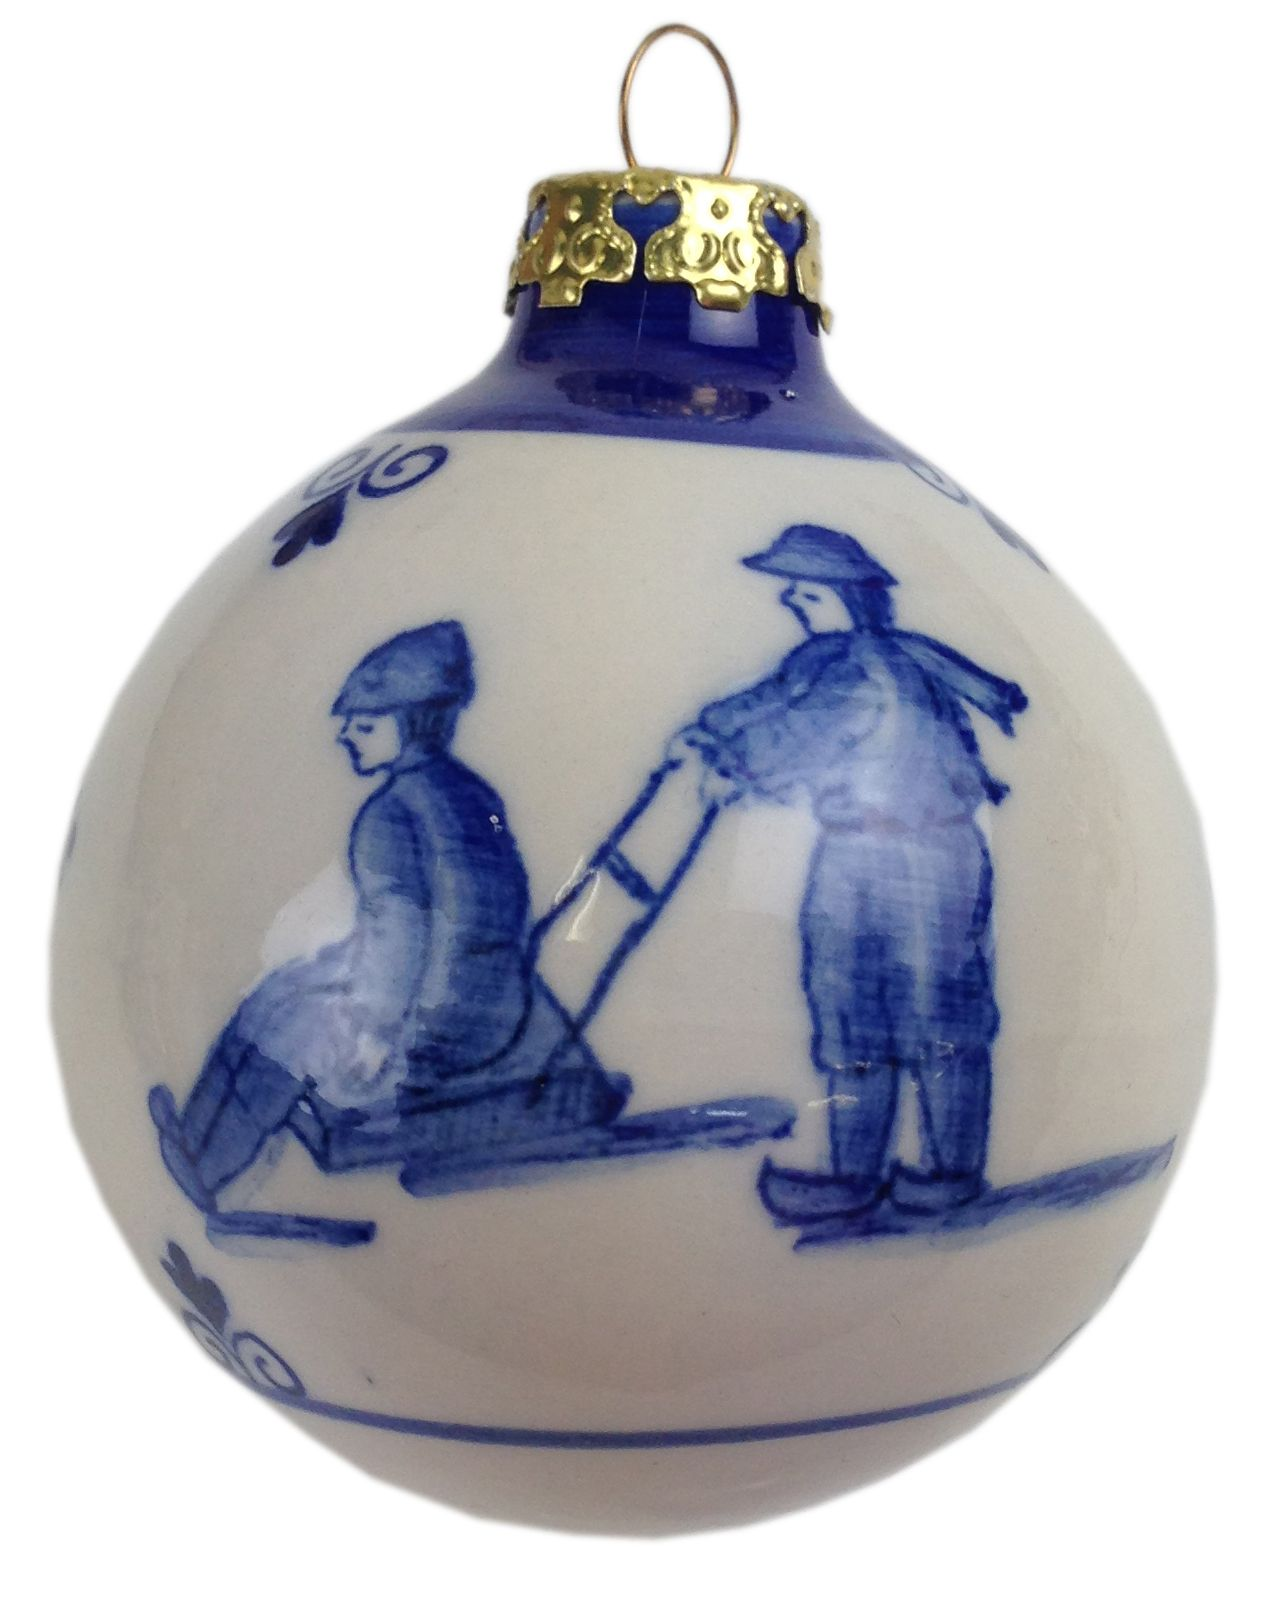 Delft blue christmas bauble - man and woman on sled